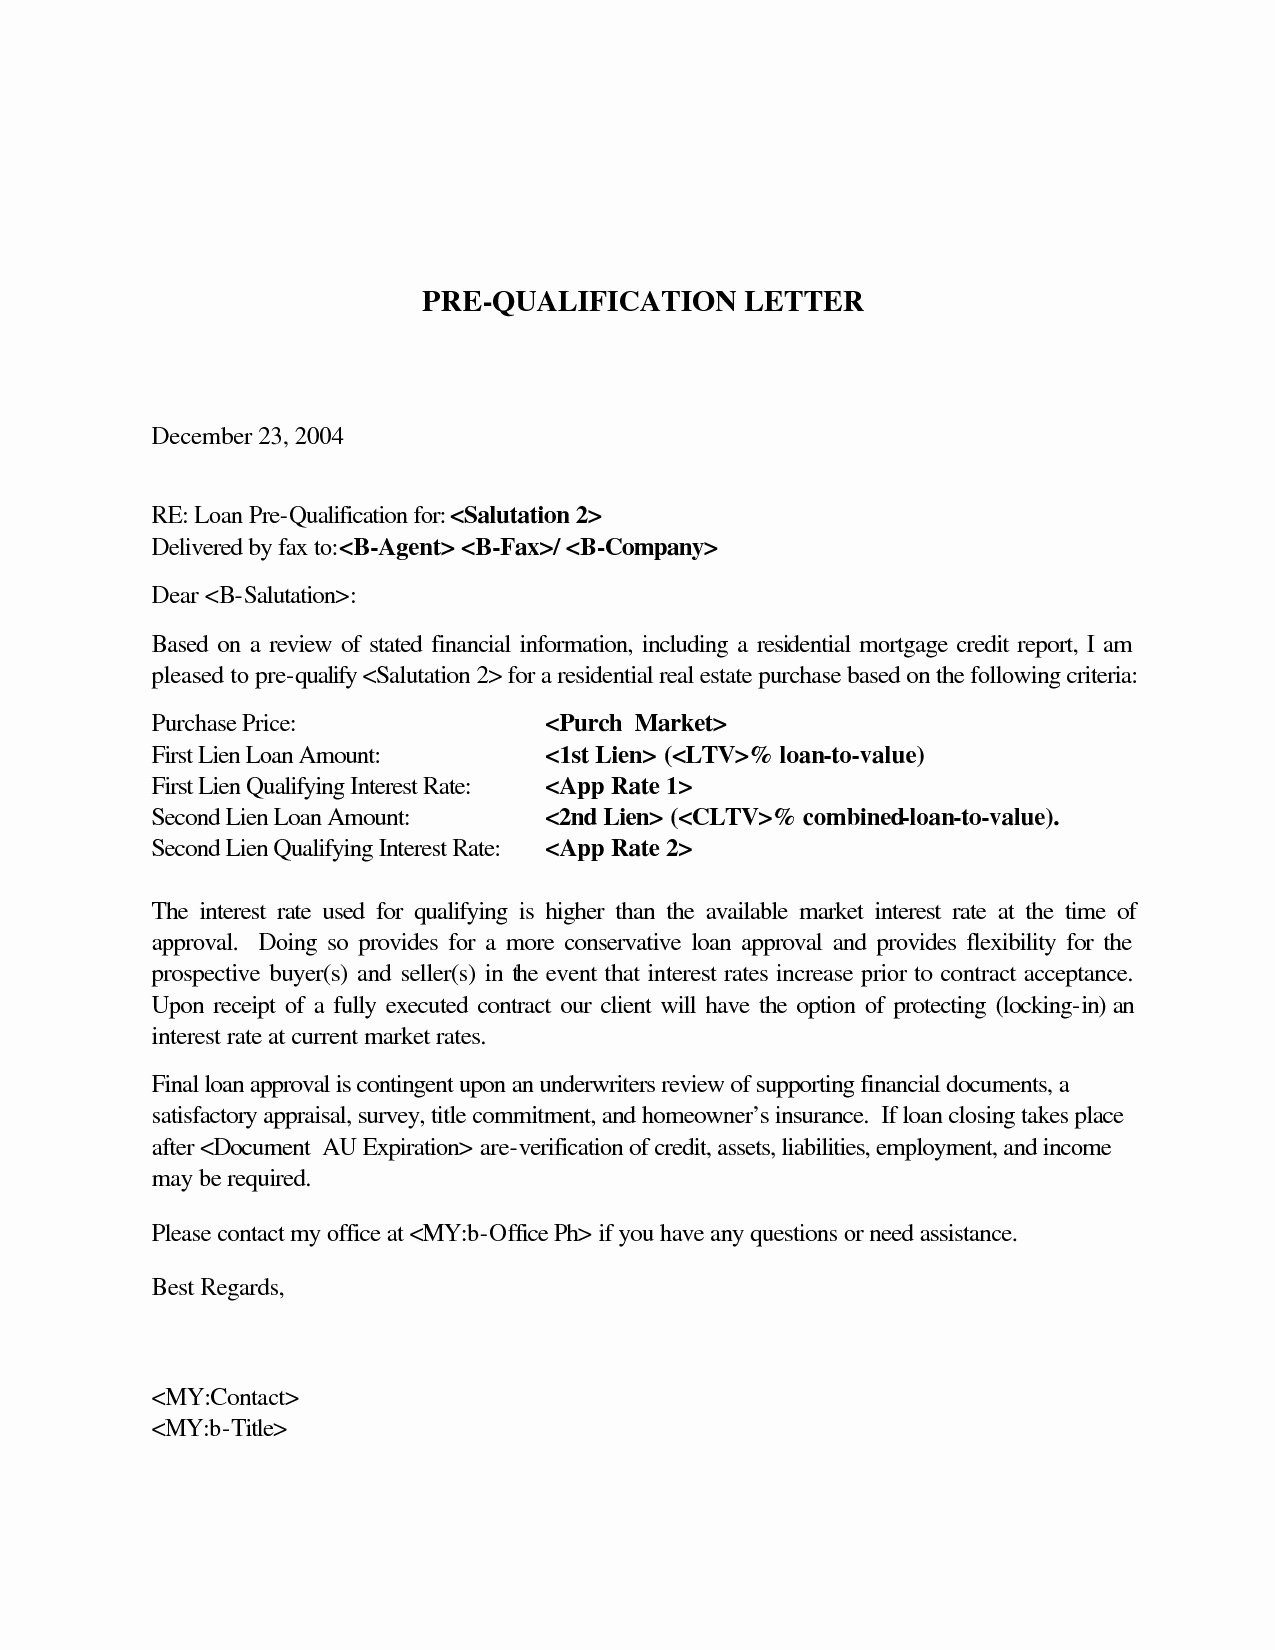 Mortgage Pre Approval Letter Template Best Of Mortgage Pre Qualification Letter Template Samples